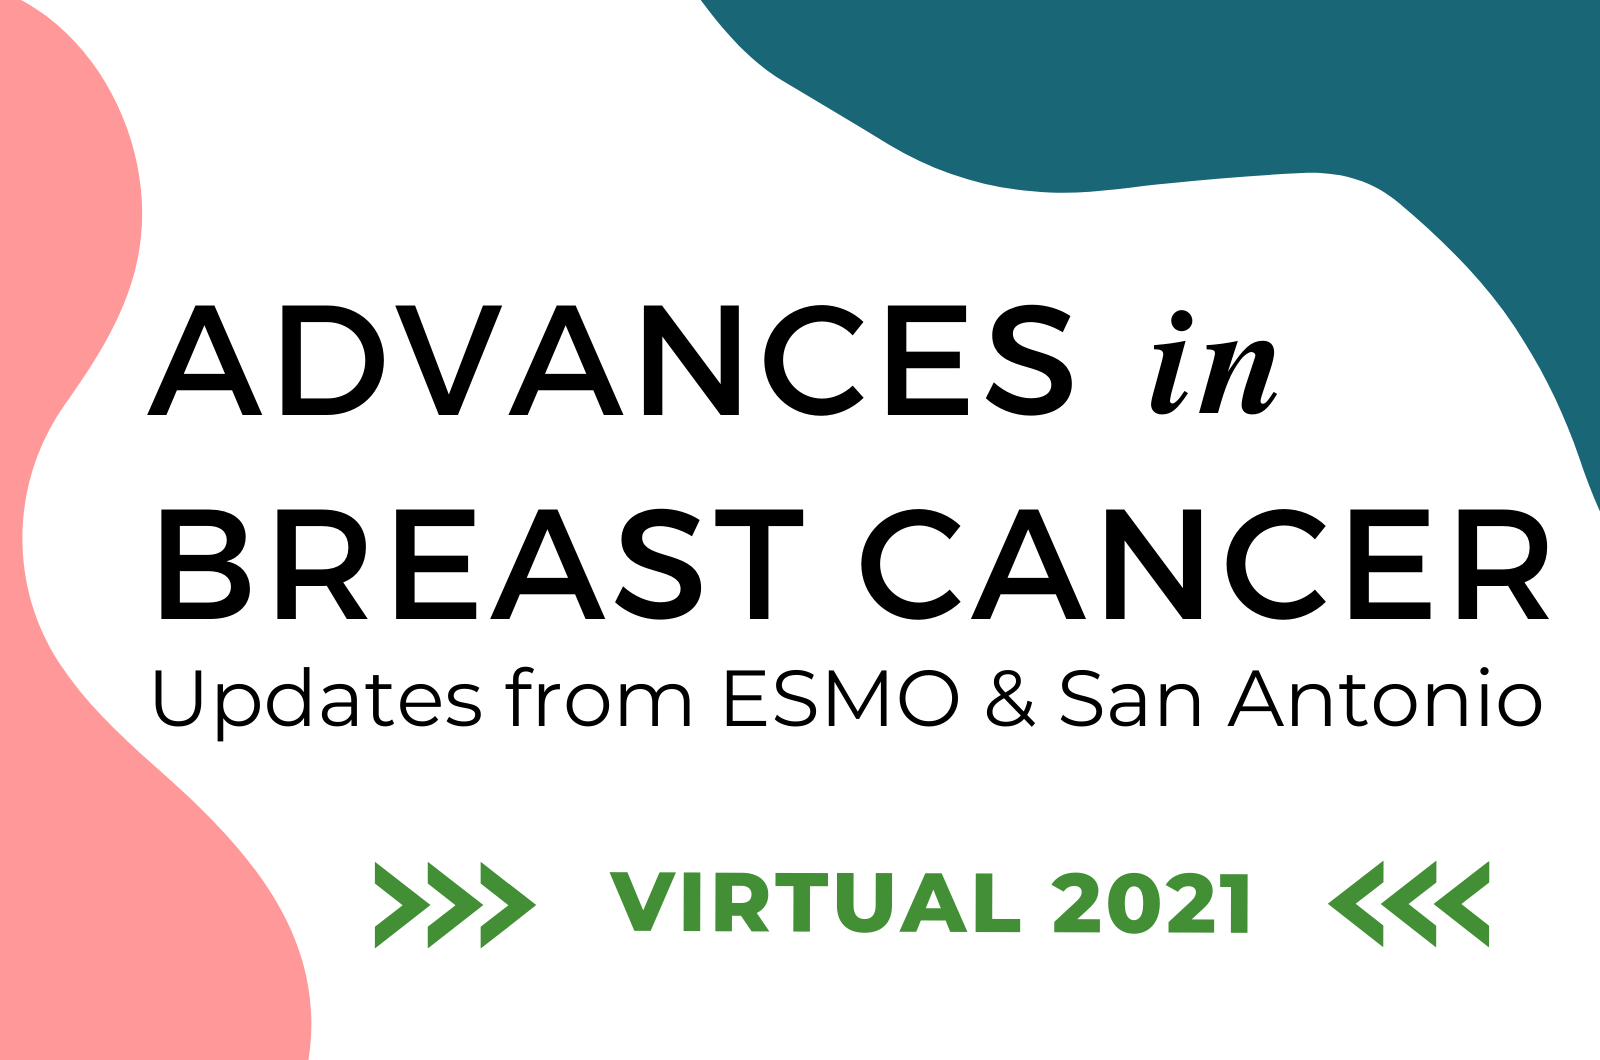 Advances in Breast Cancer